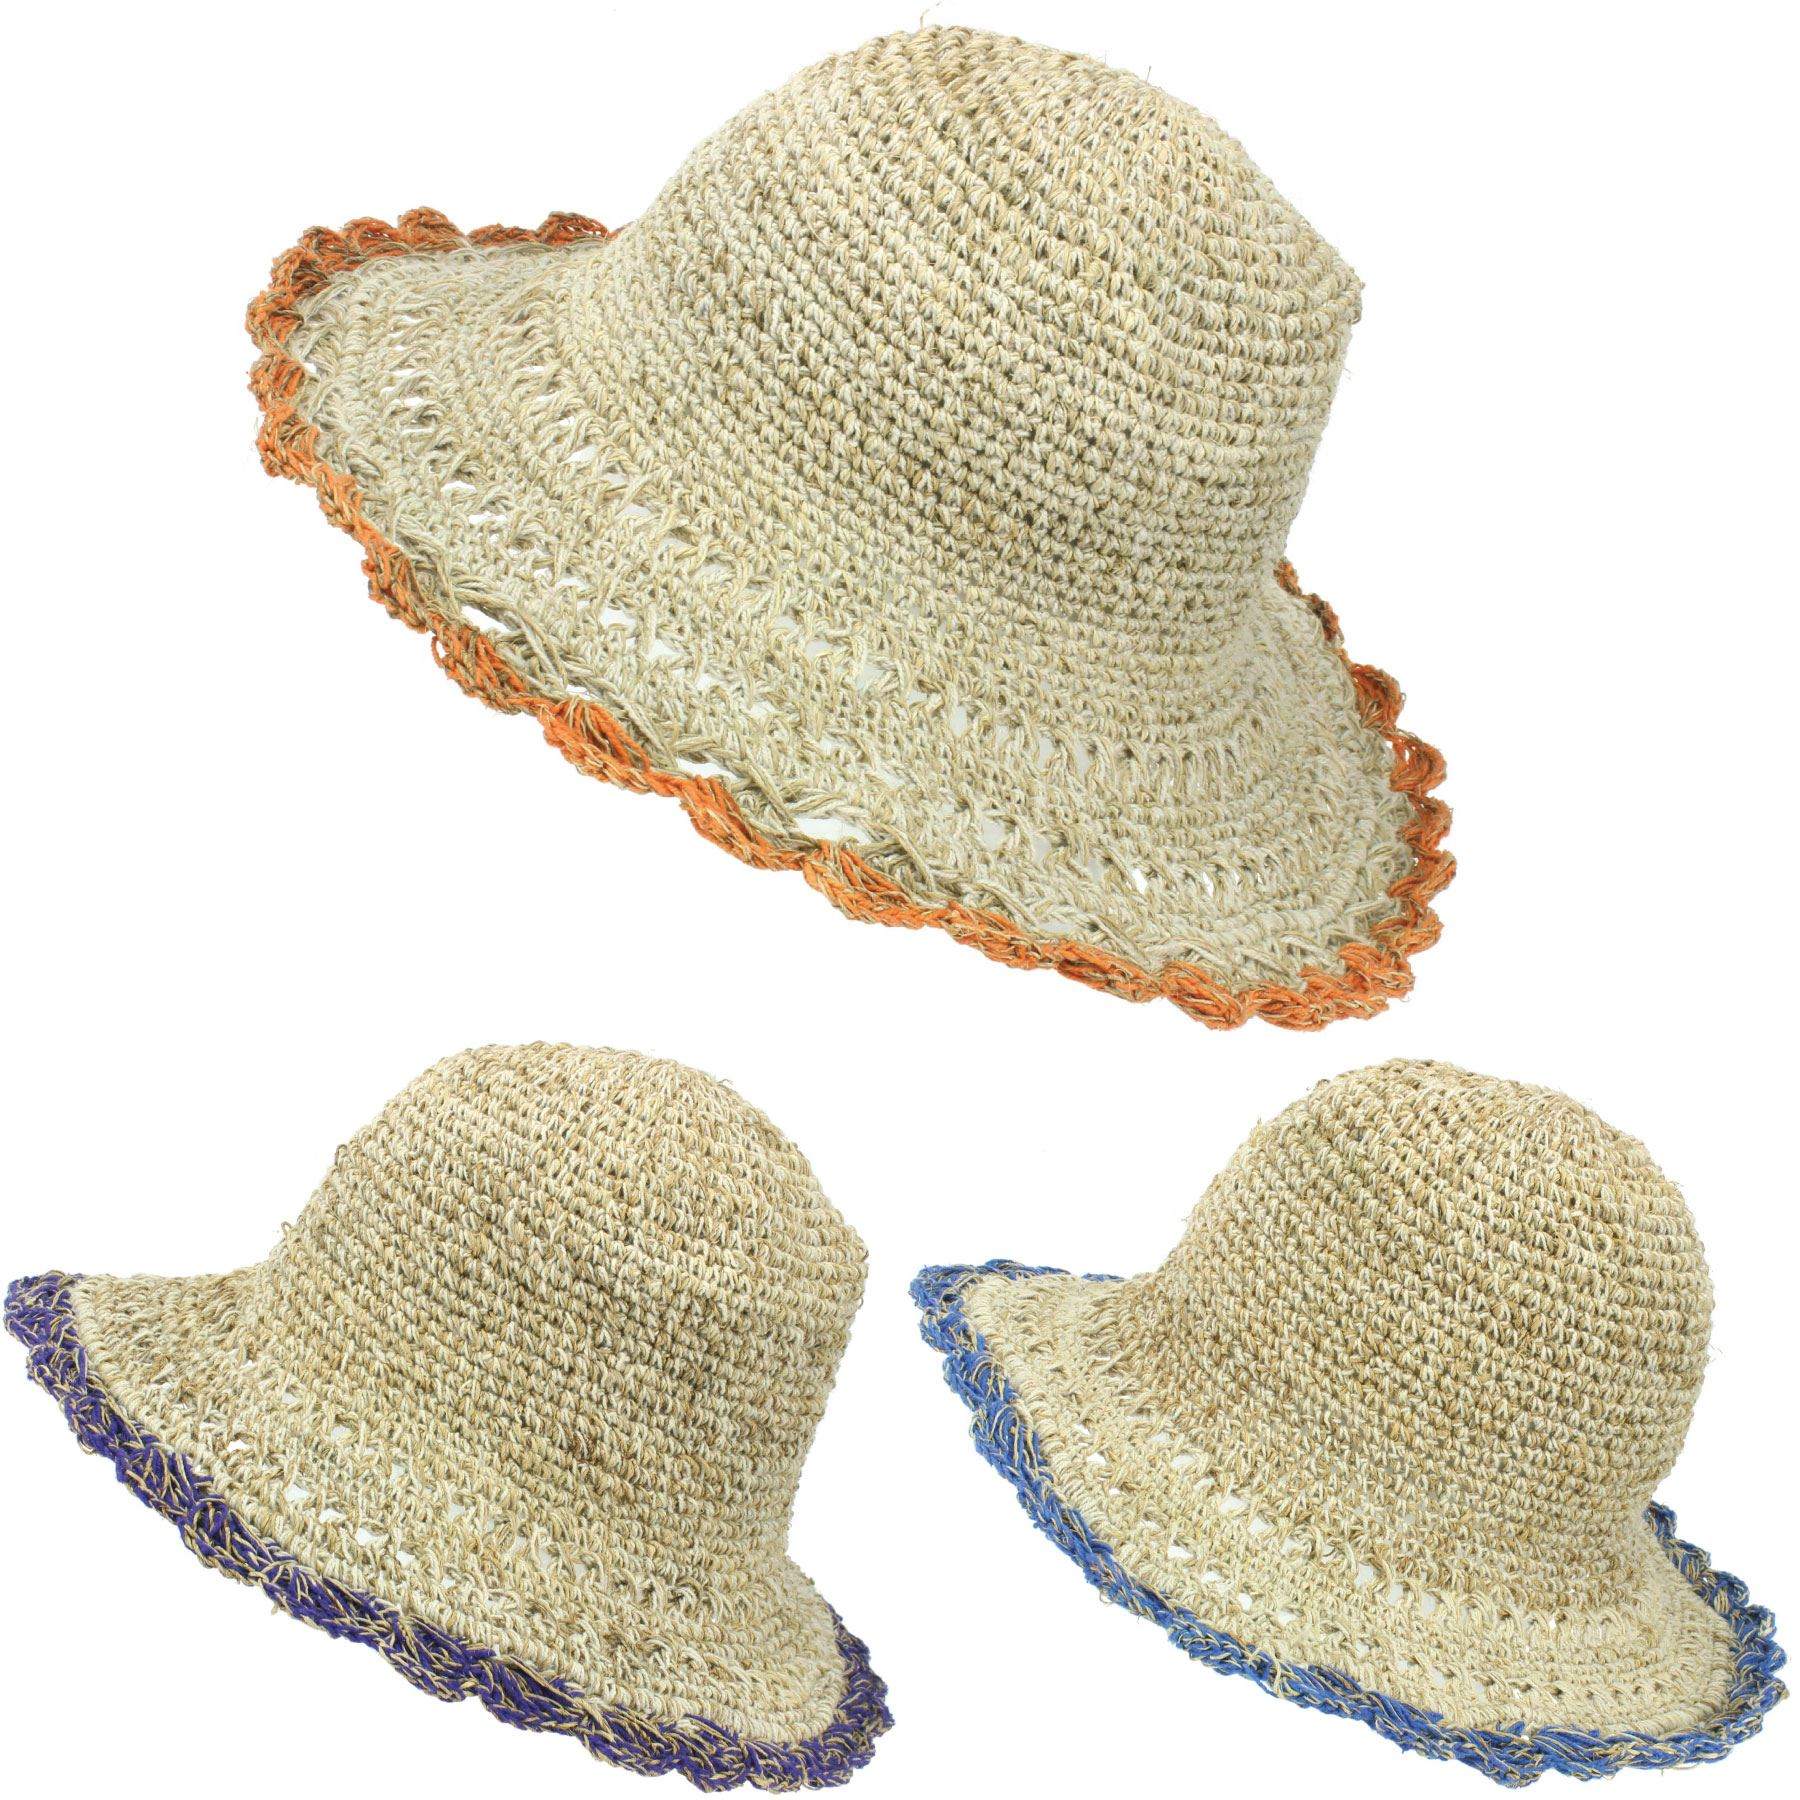 abb6e4eaabd603 Details about Sun Hat Hemp Cotton Summer LoudElephant Brim Beach Cap Boho  Hippy